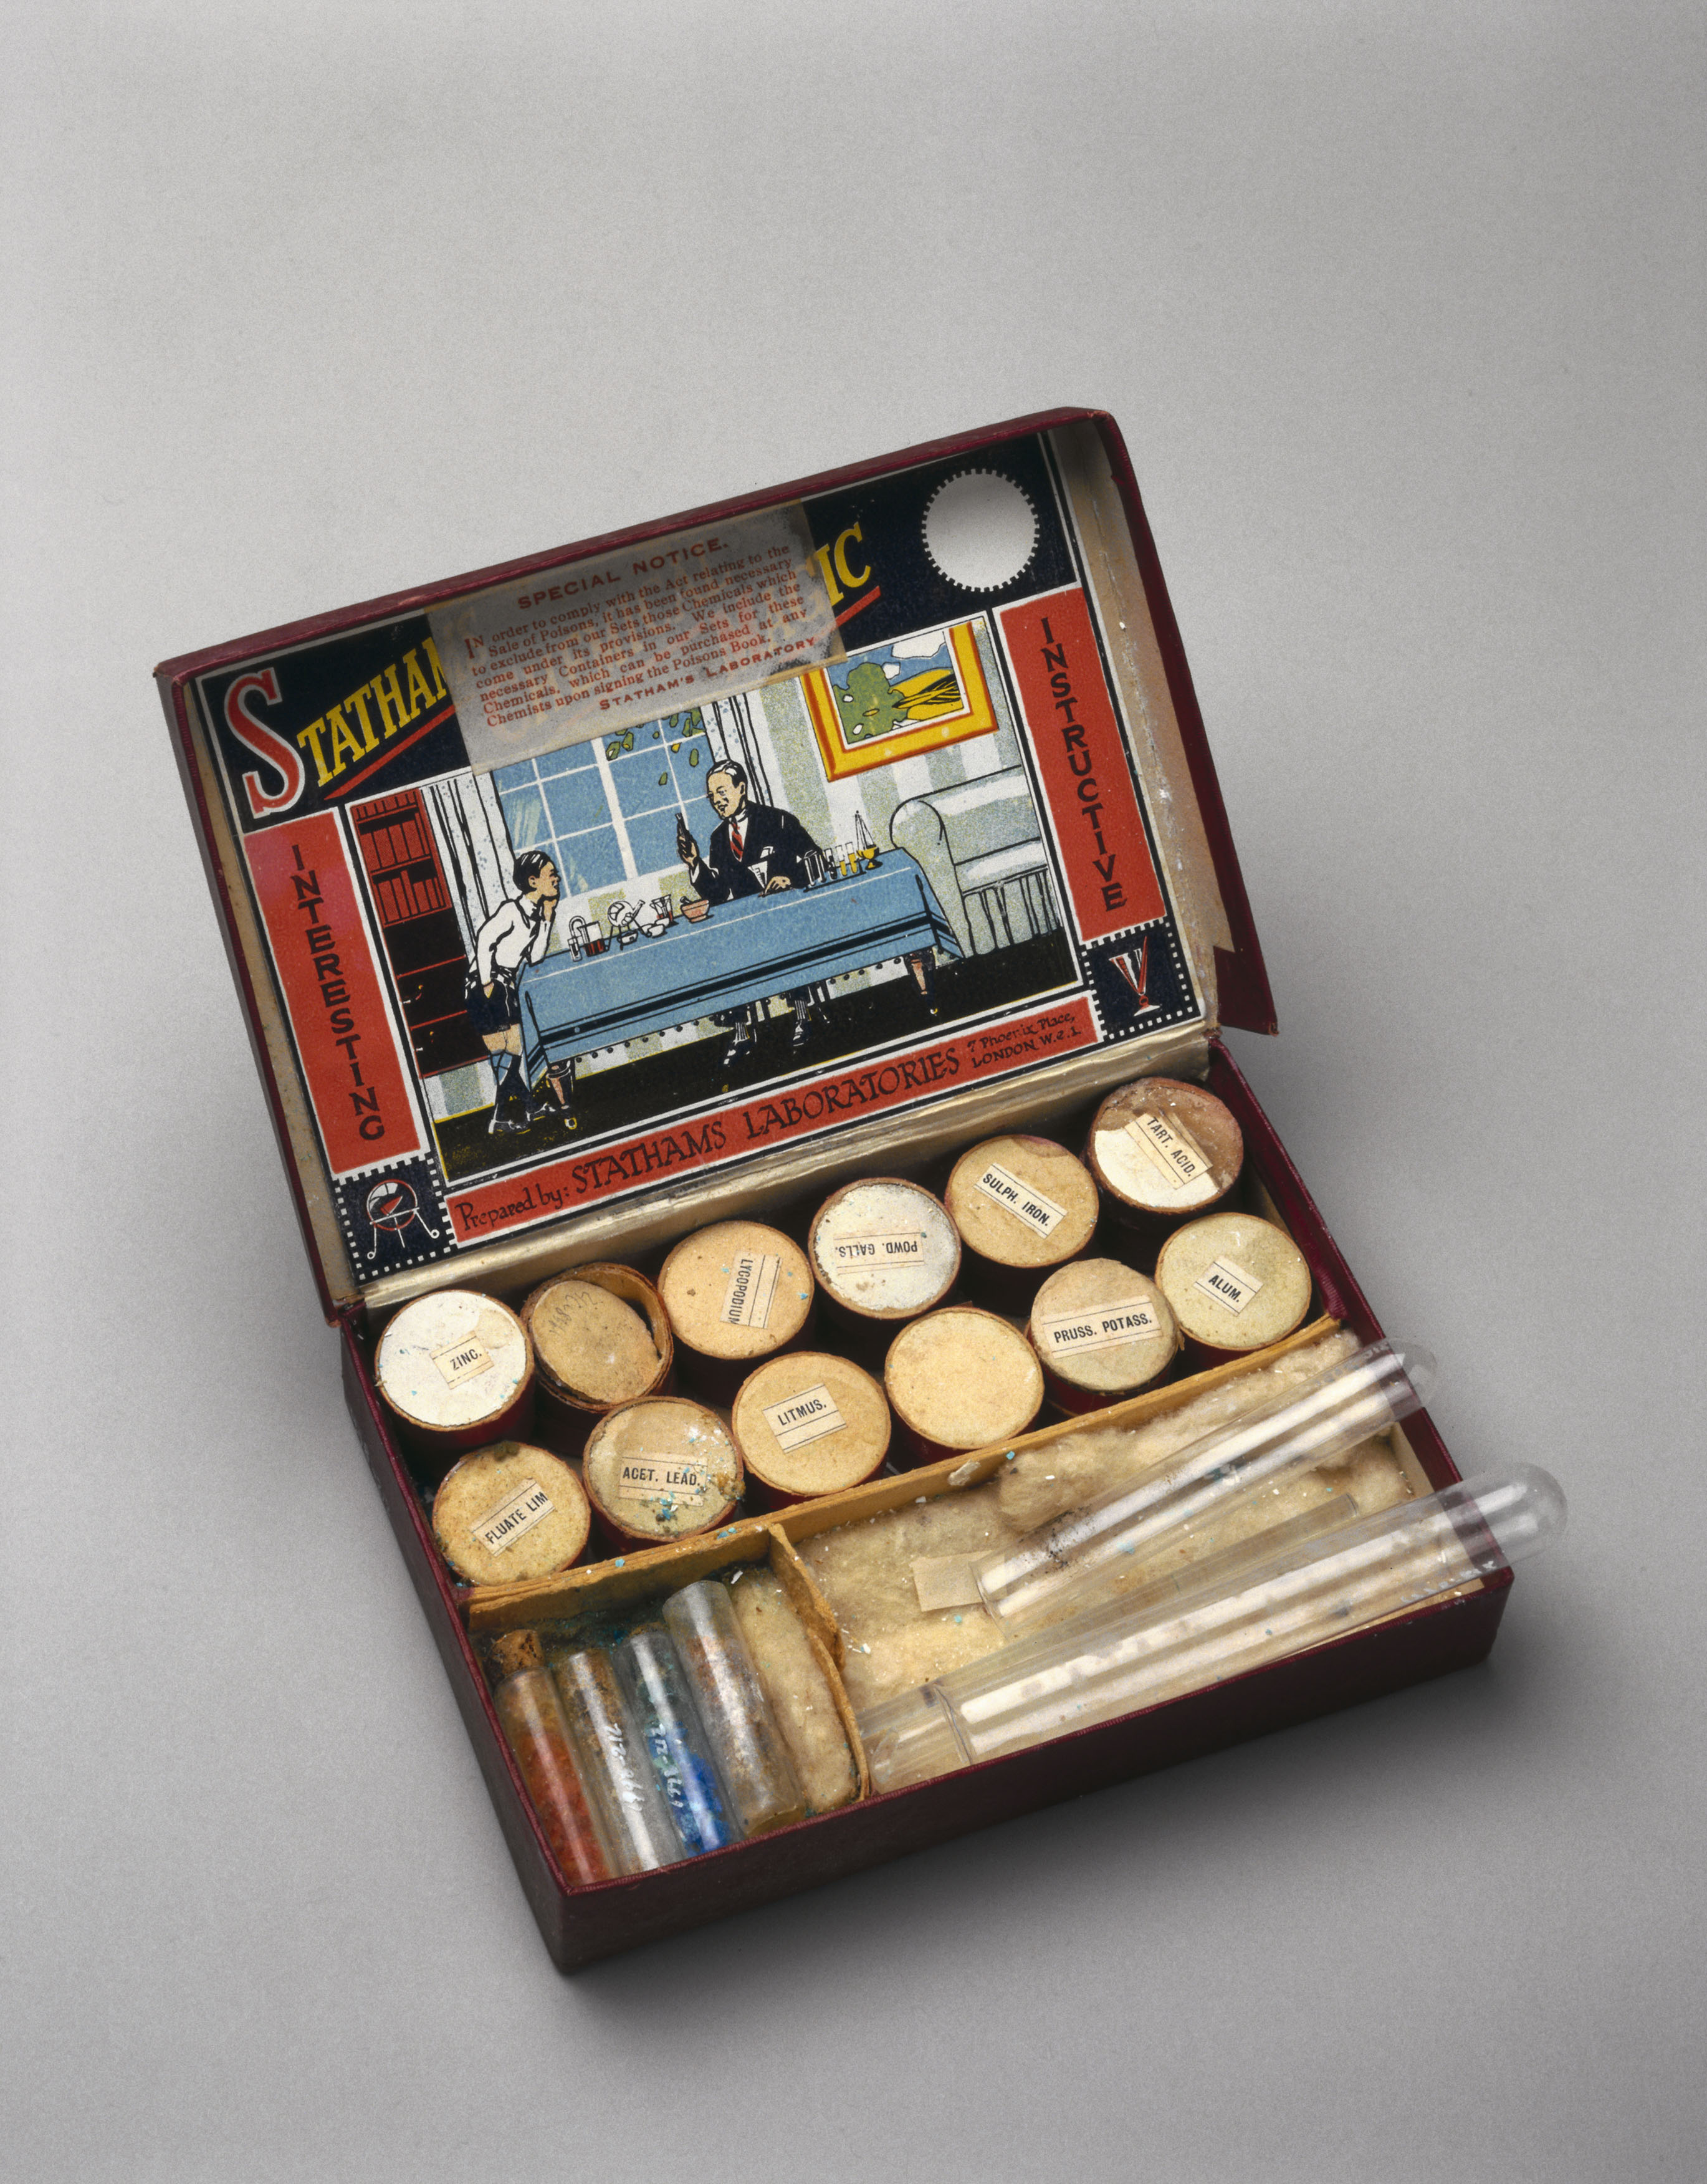 Stathams Chemical Magic chemistry set, c 1920-1940. The cardboard case contains instructions, chemicals and test tubes. The inside of the lid shows a picture of a father and son enjoying the kit.  (Photo by SSPL/Getty Images)